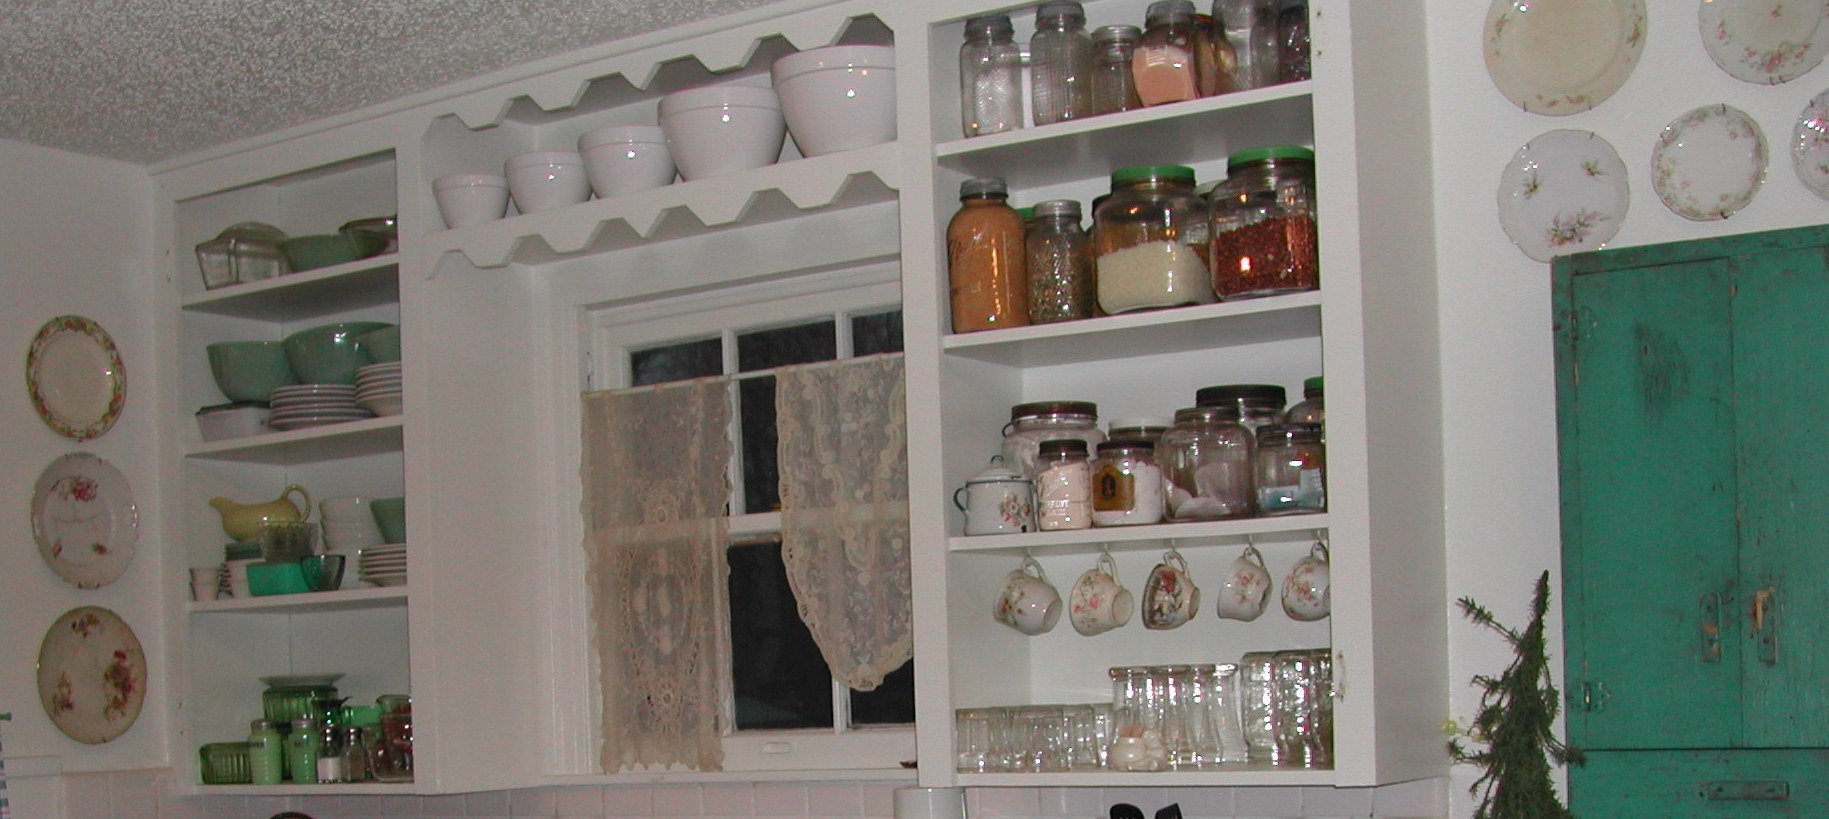 decorative jars, teacups, and plates in old kitchen